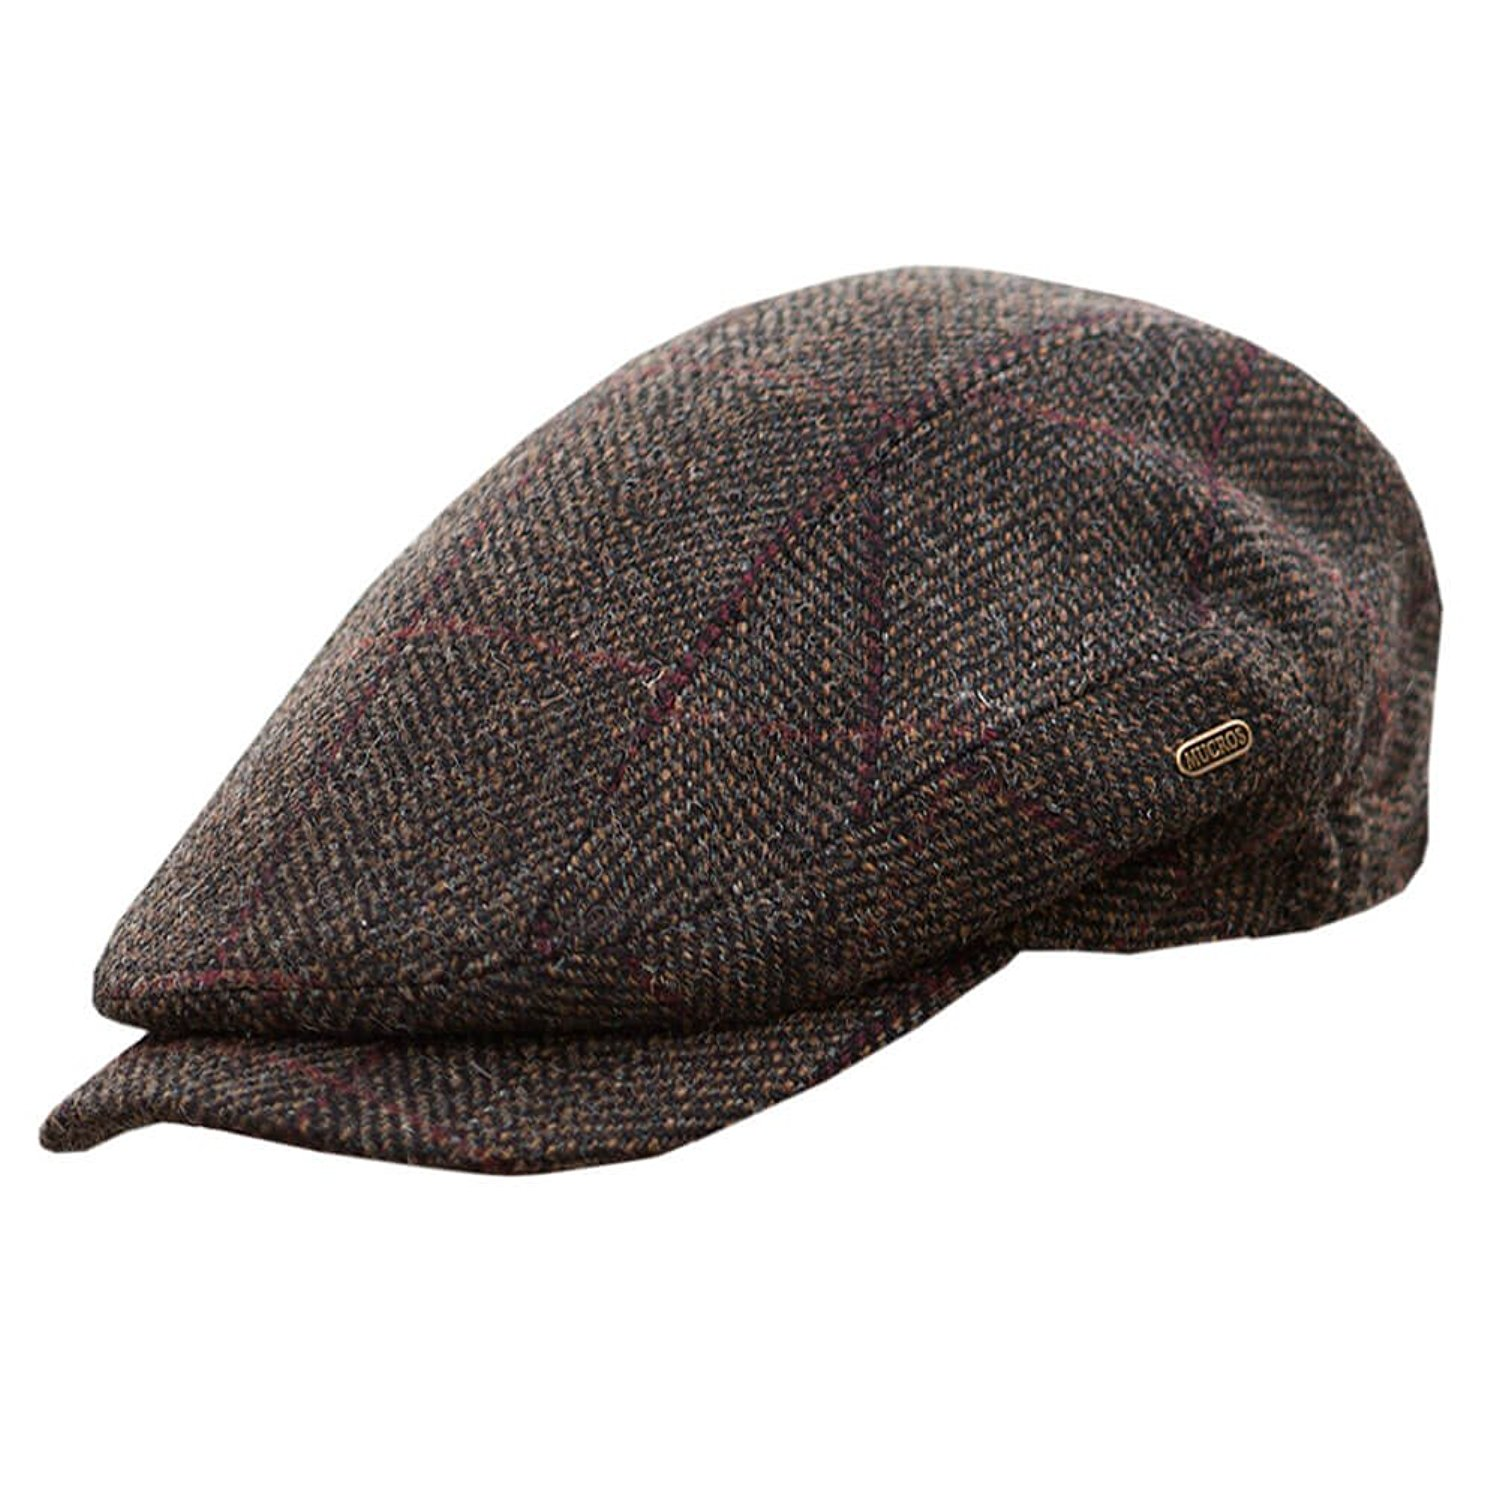 9e454c6ef Cheap Mens Tweed Cap, find Mens Tweed Cap deals on line at Alibaba.com